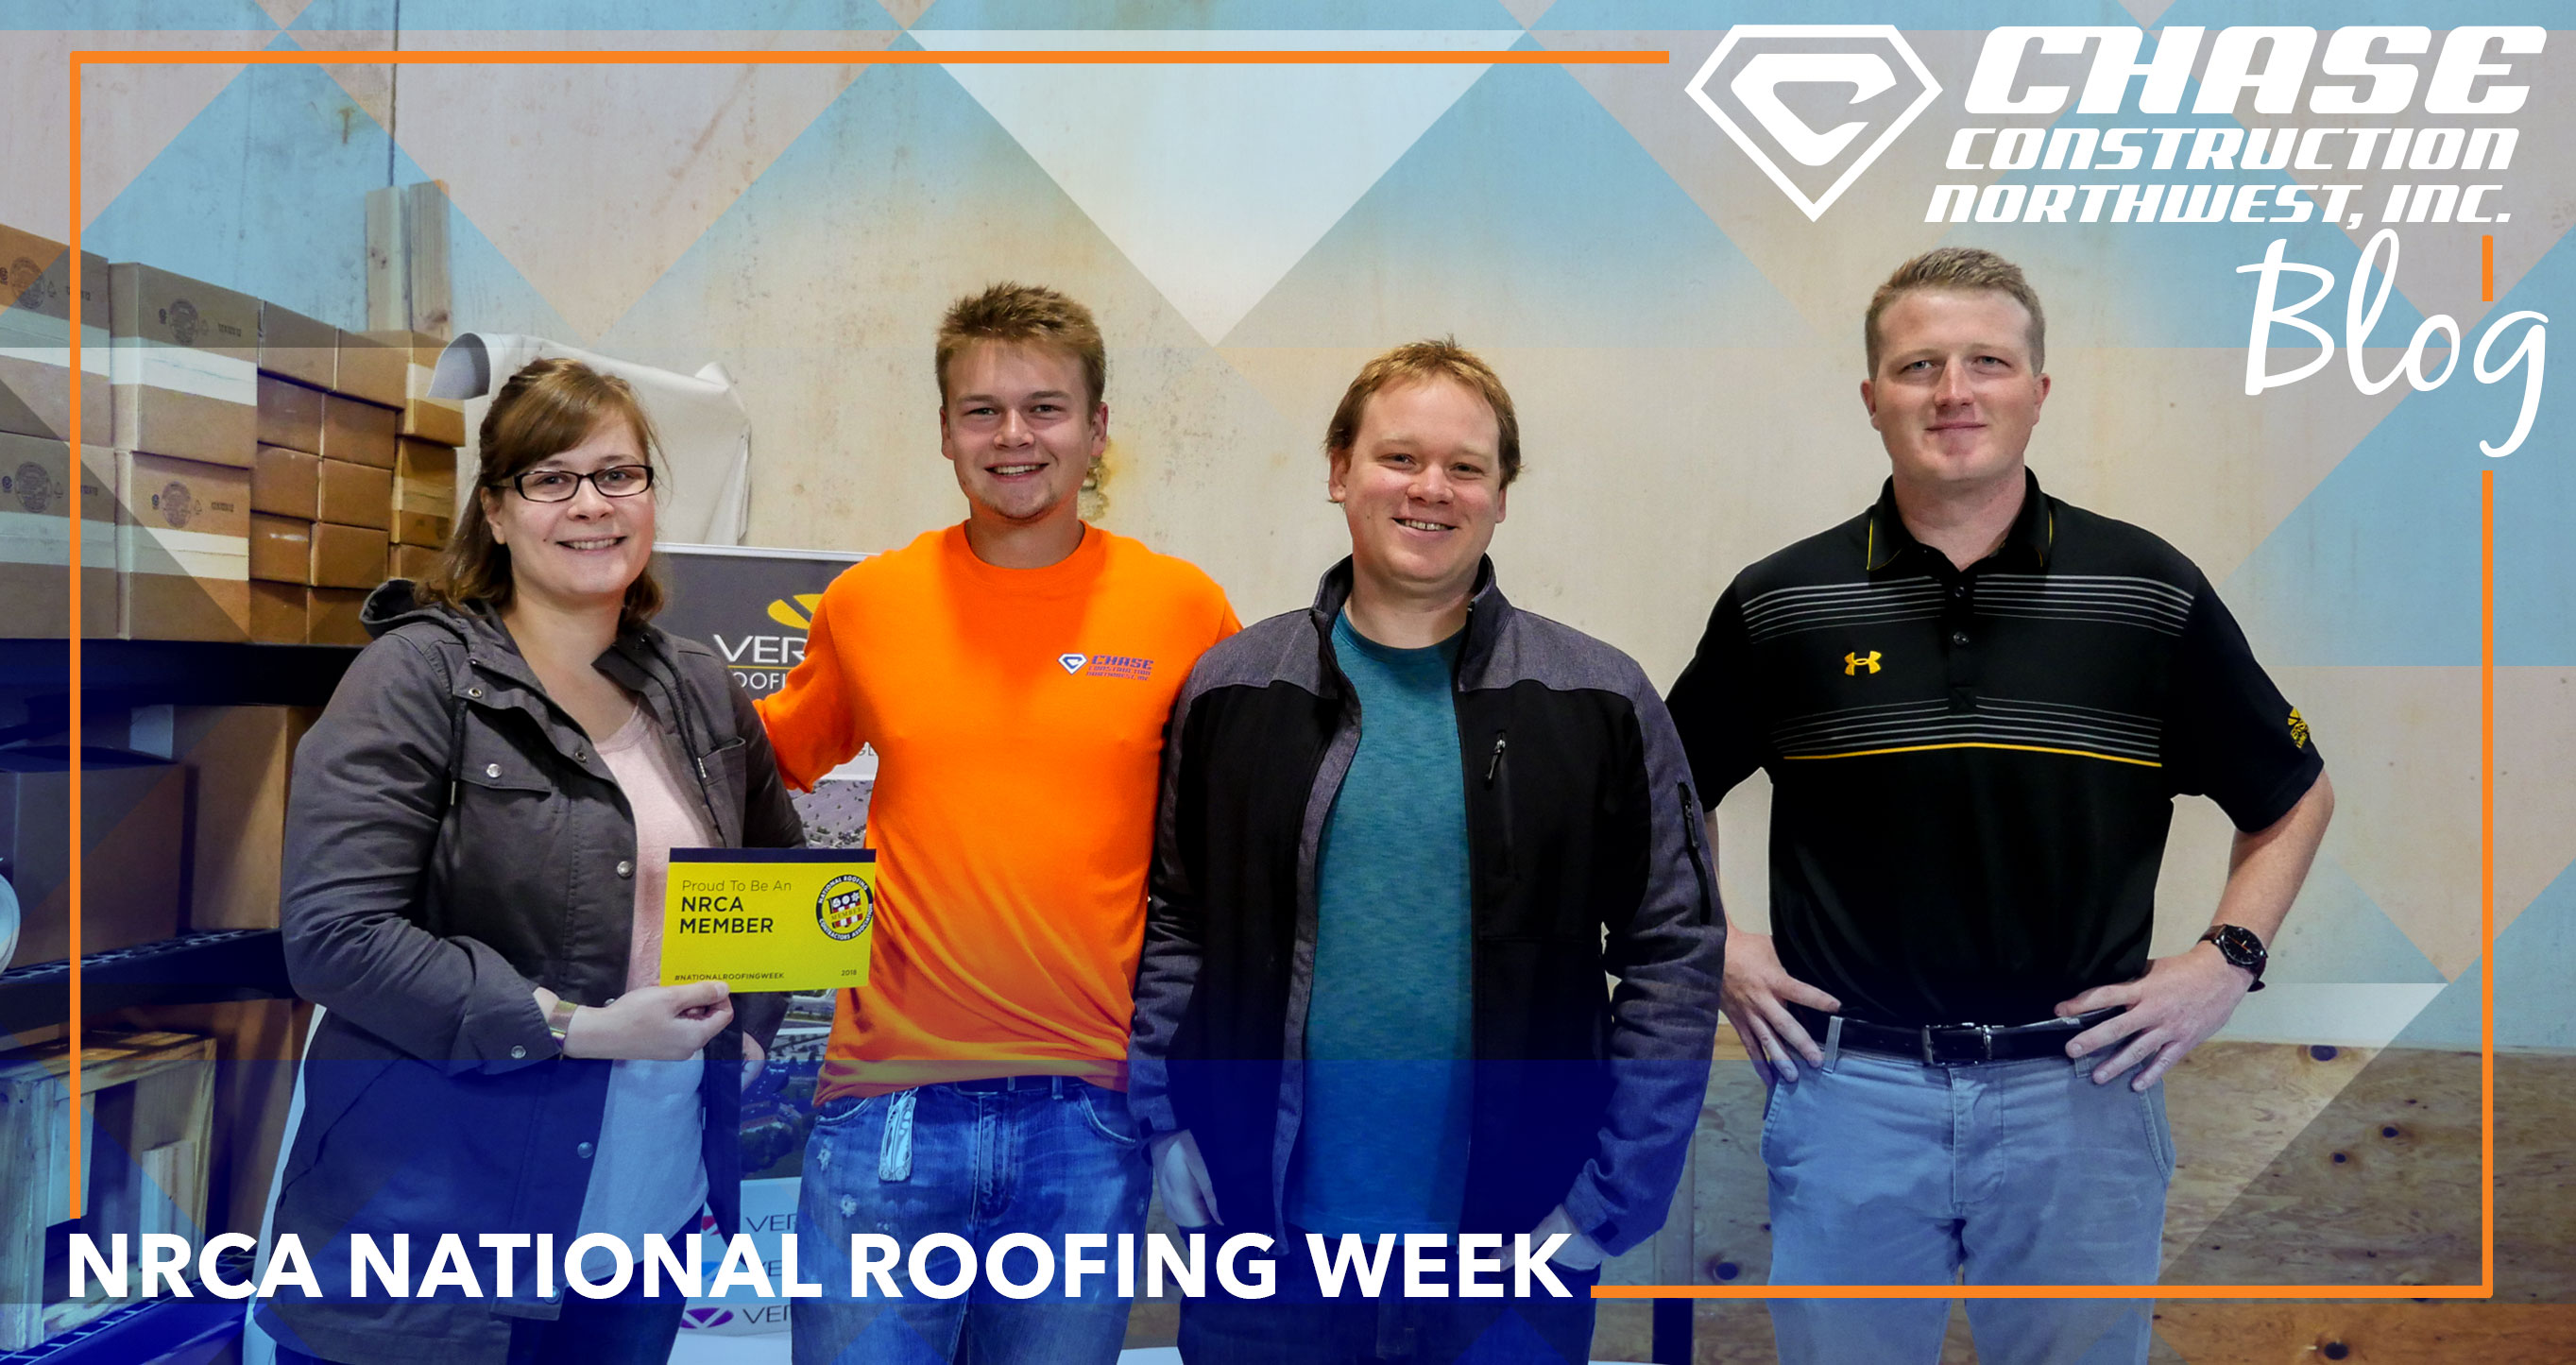 Nrca National Roofing Week 2018 Employee Training Chase